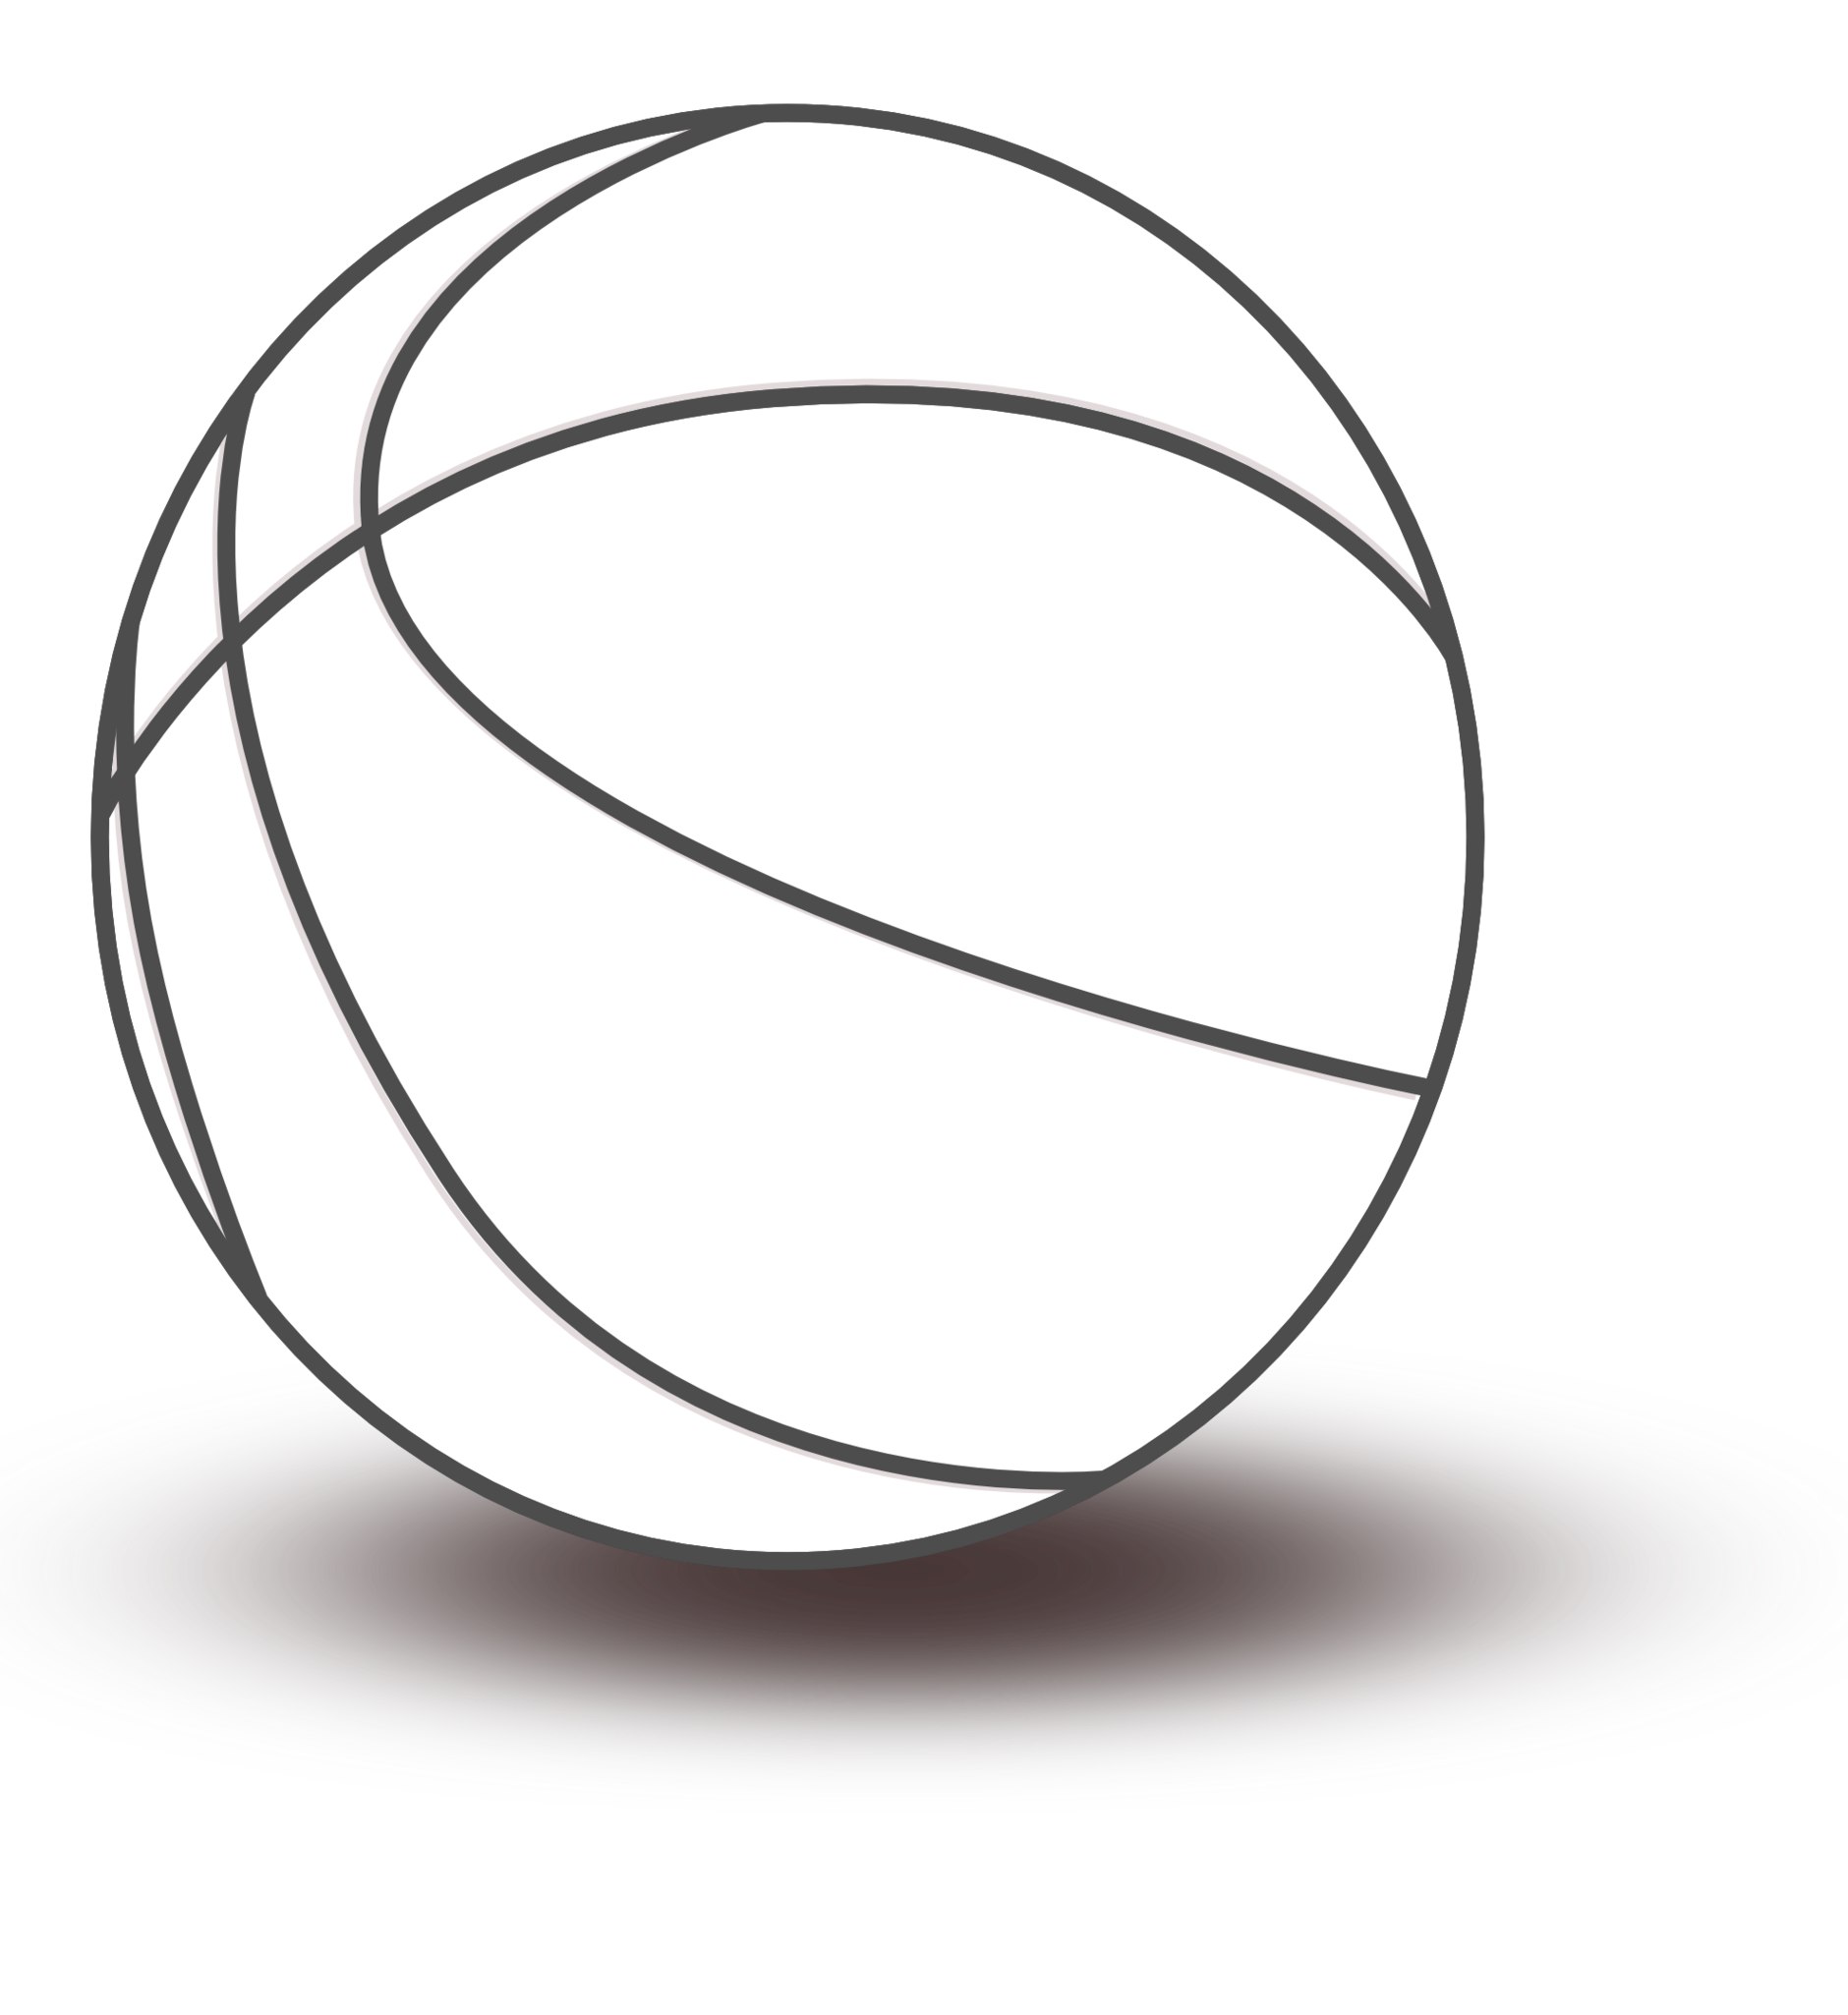 Basketball mom black and white clipart images clip freeuse library Free White Basketball Cliparts, Download Free Clip Art, Free Clip ... clip freeuse library